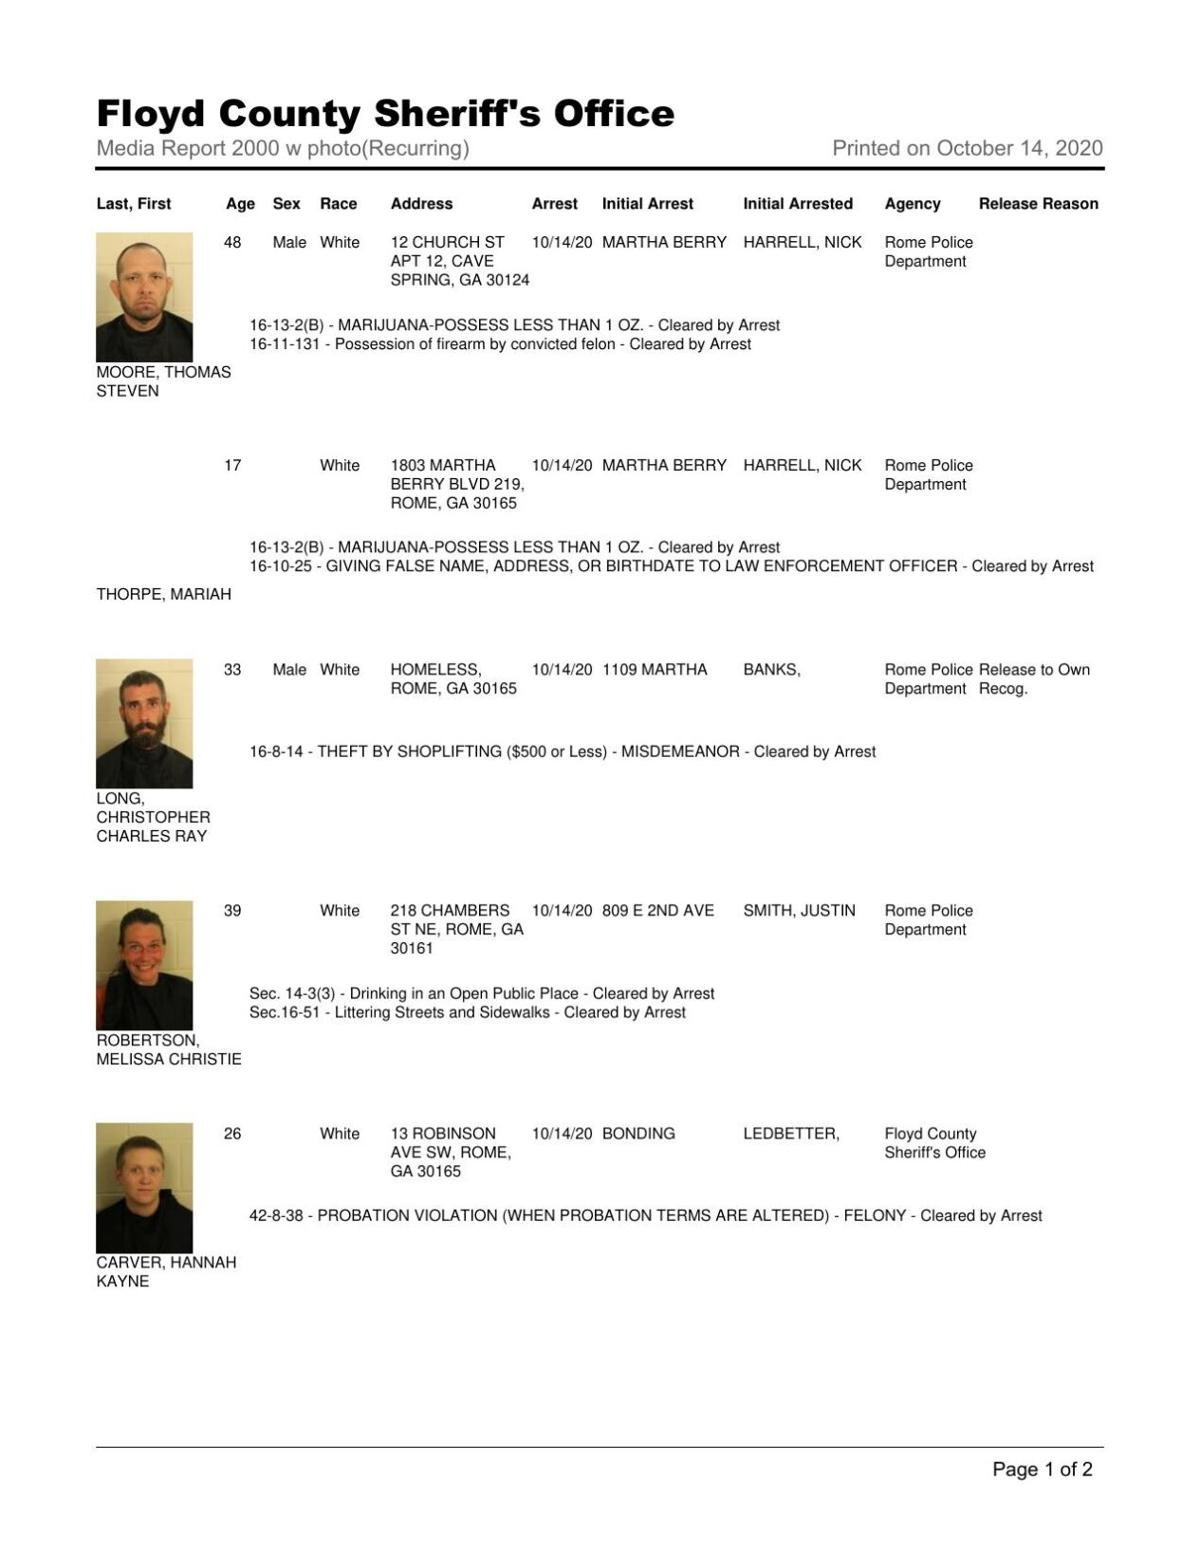 Floyd County Jail report for 8 p.m. Wednesday, Oct. 14